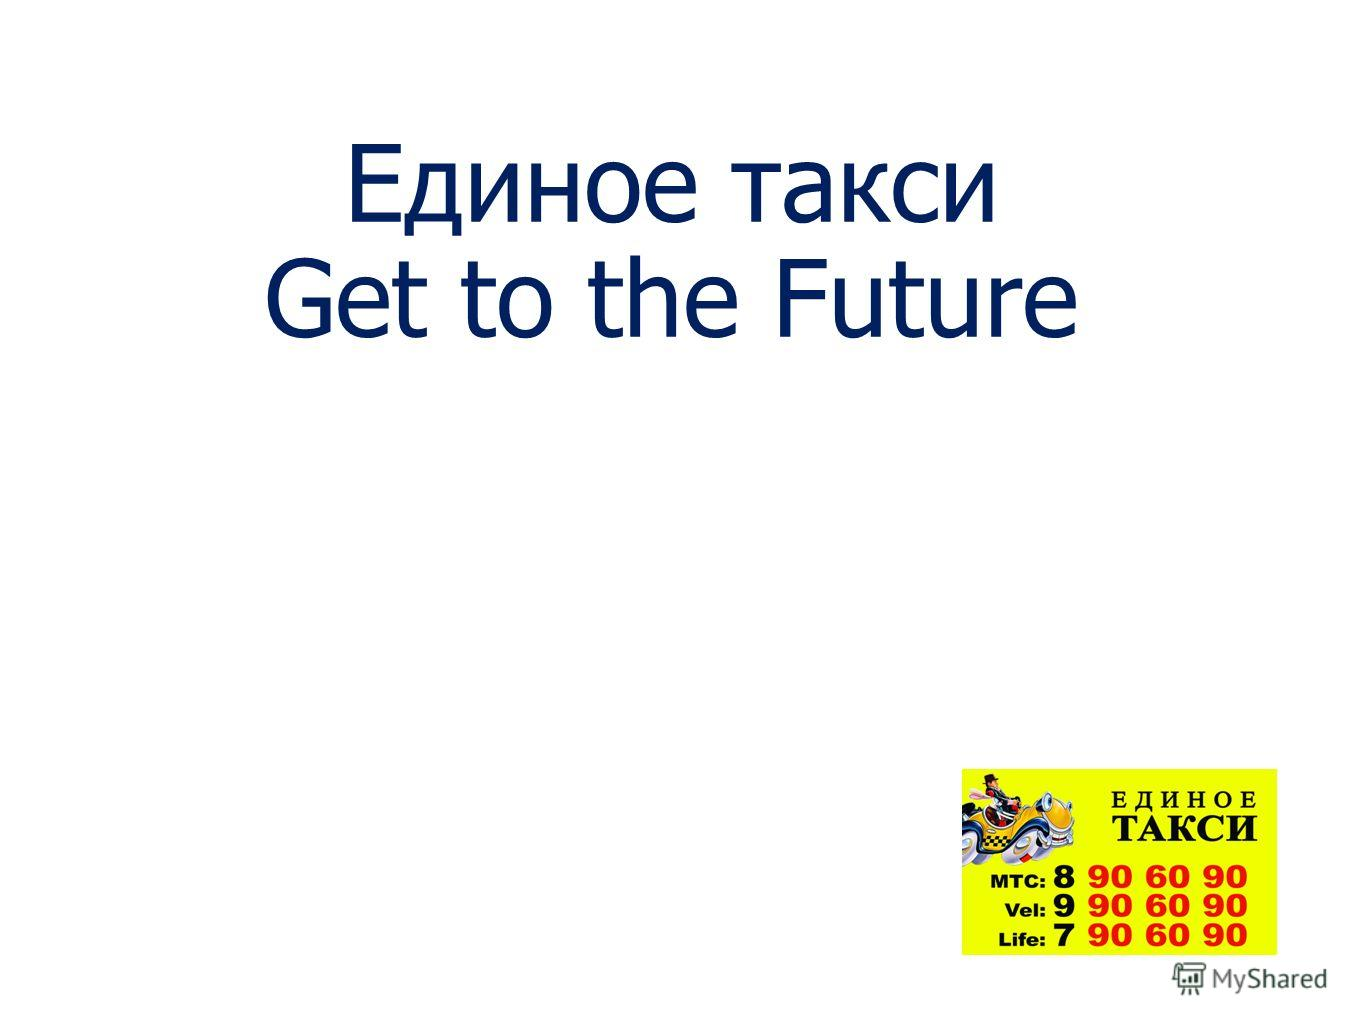 Единое такси Get to the Future